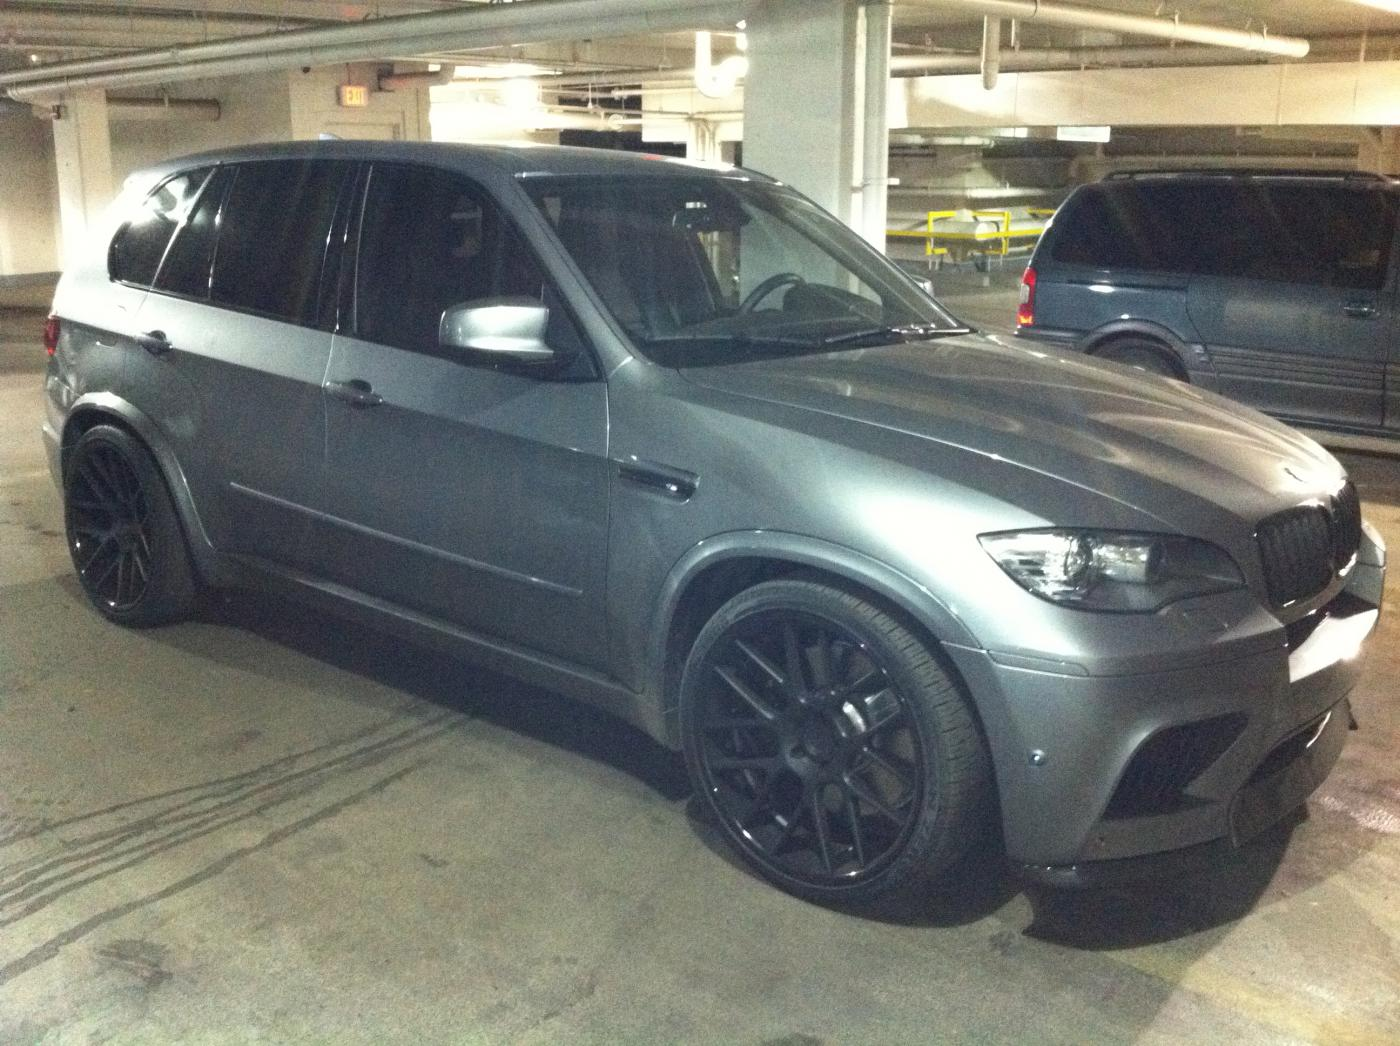 Please Post Your Pics Of An X5m W Aftermarket Wheels